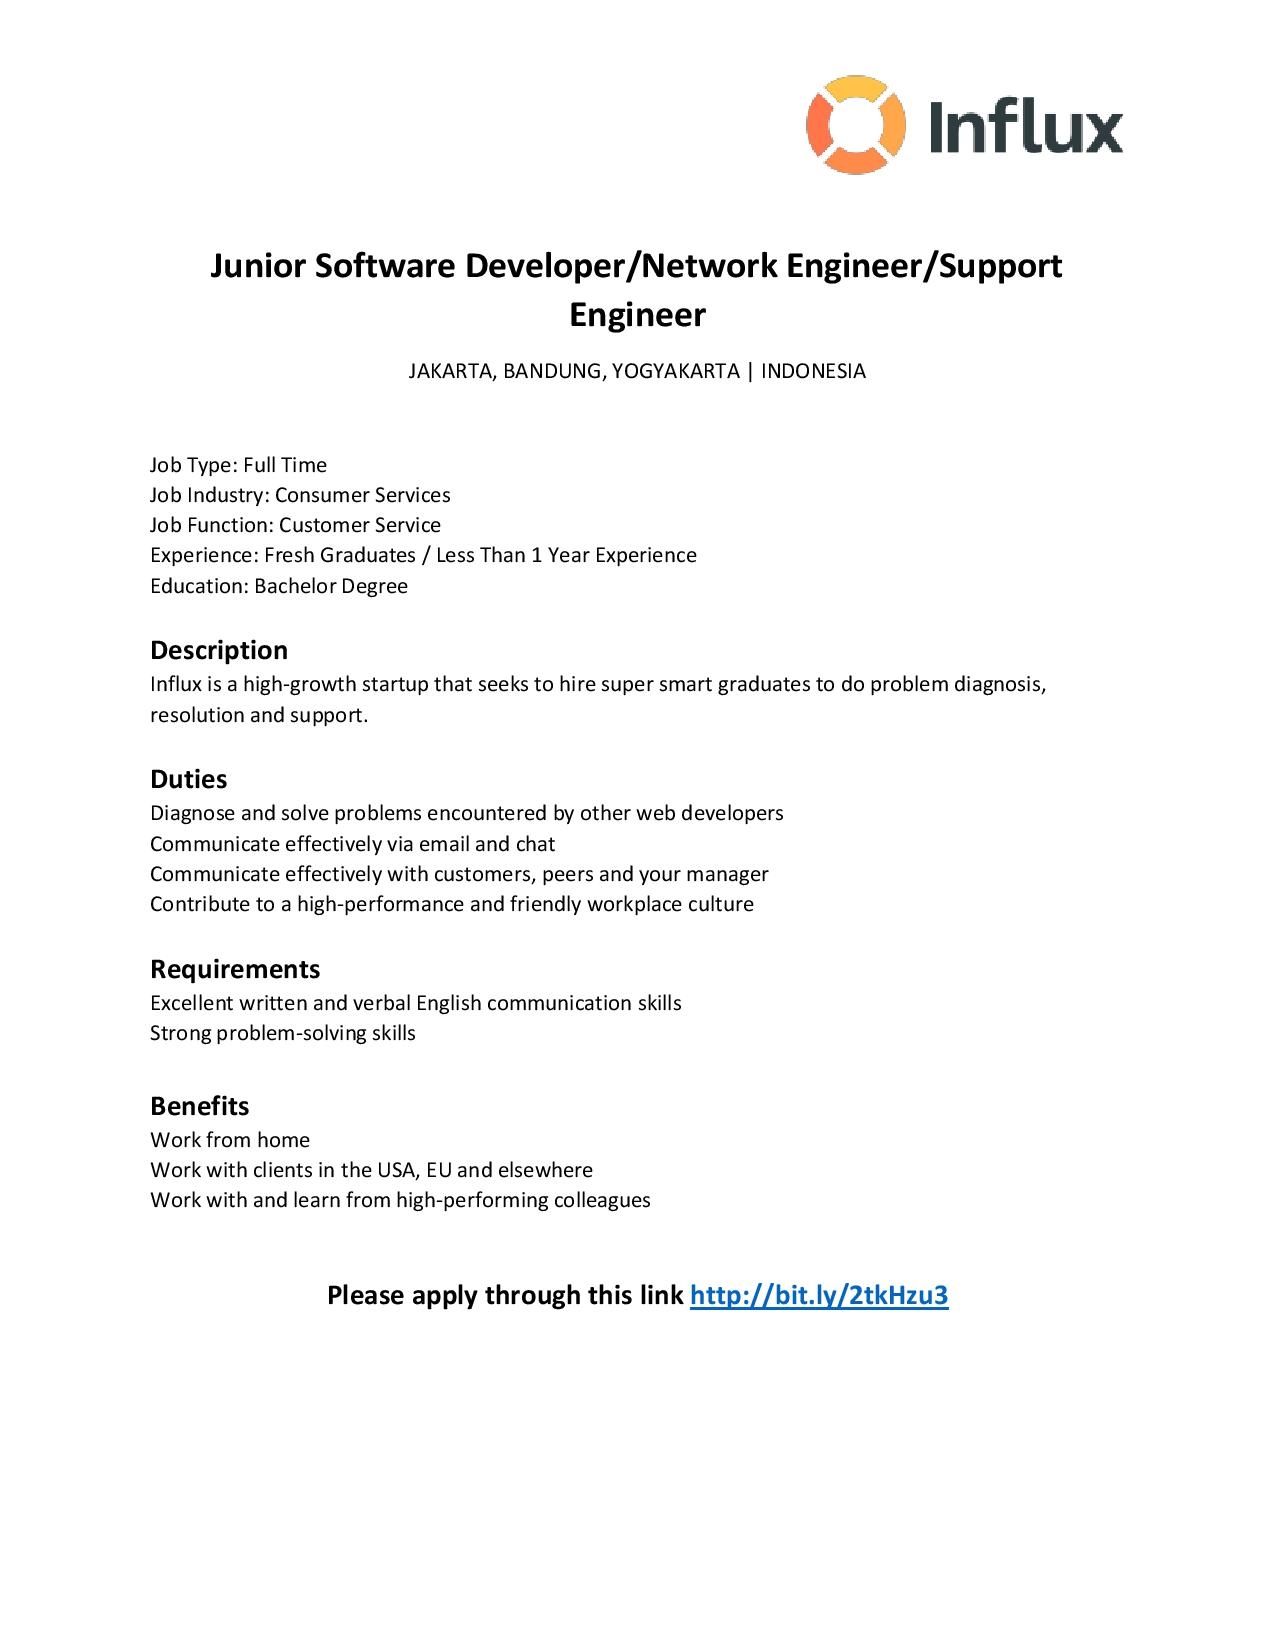 Junior Software Developer Job Description